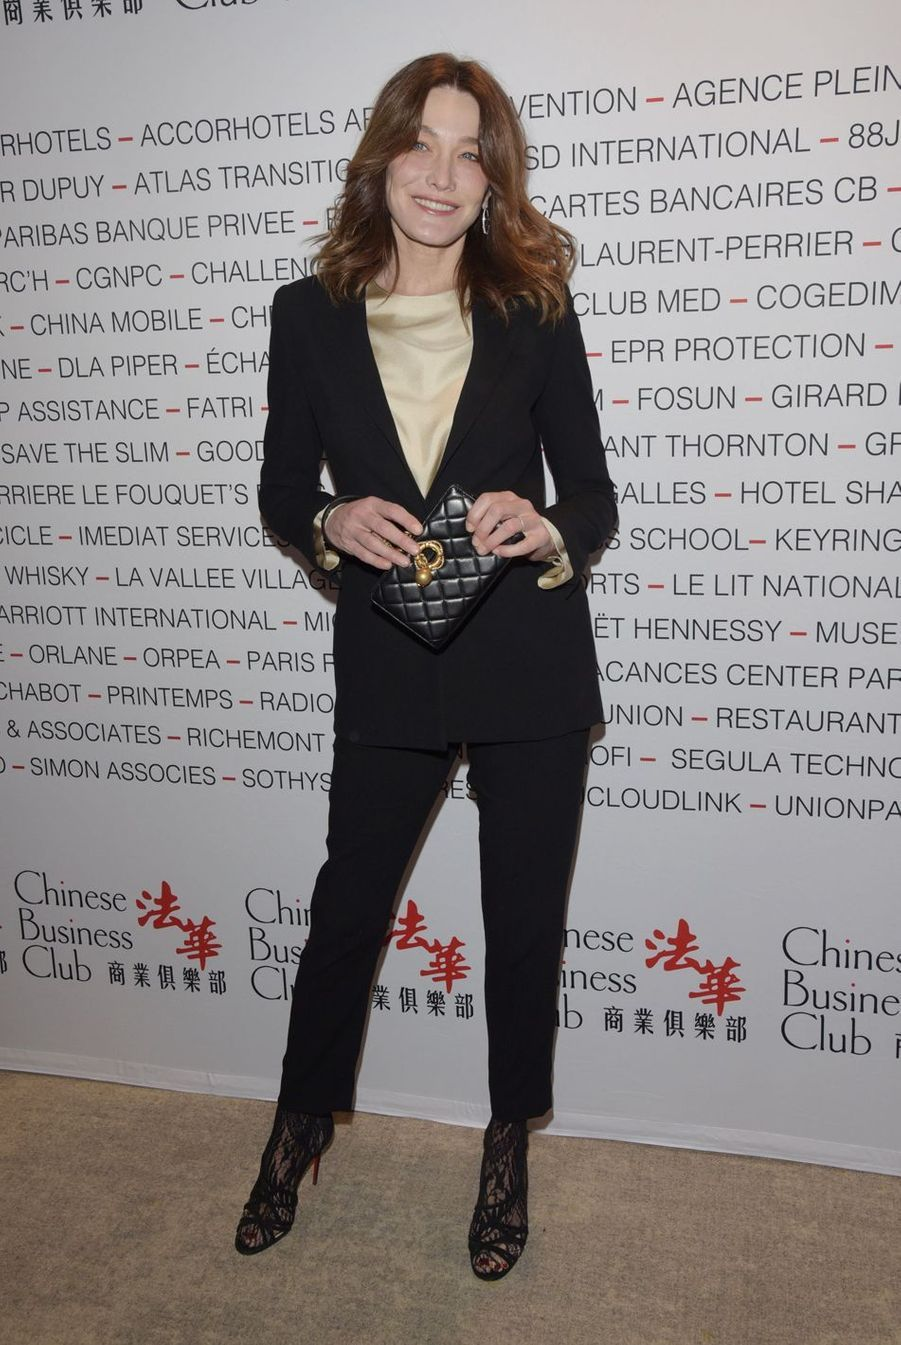 Carla Bruni lors du déjeuner du Chinese Business Club à Paris, le 8 mars 2019